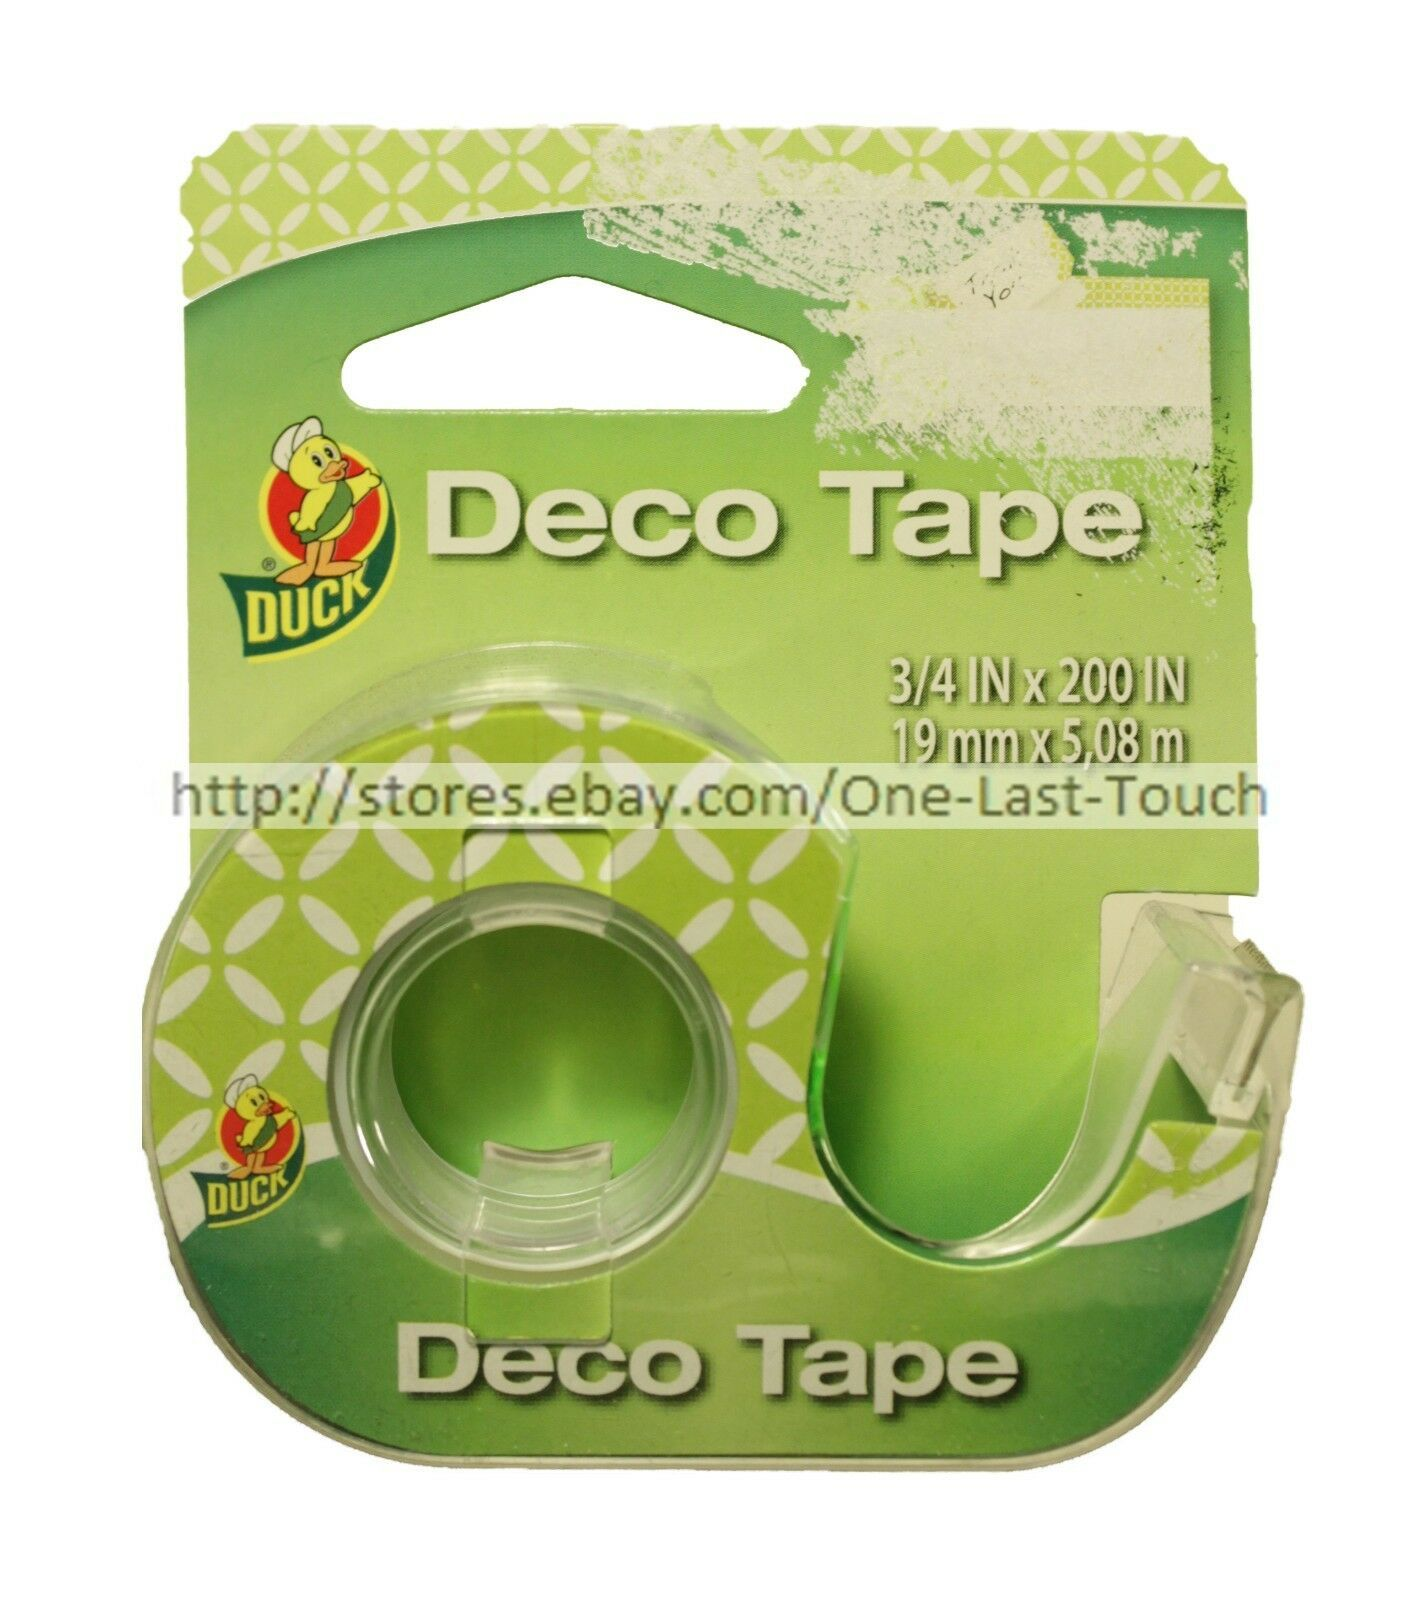 DUCK* Decorative DECO TAPE Handheld Dispenser GLOSSY FINISH New! *YOU CHOOSE* image 4